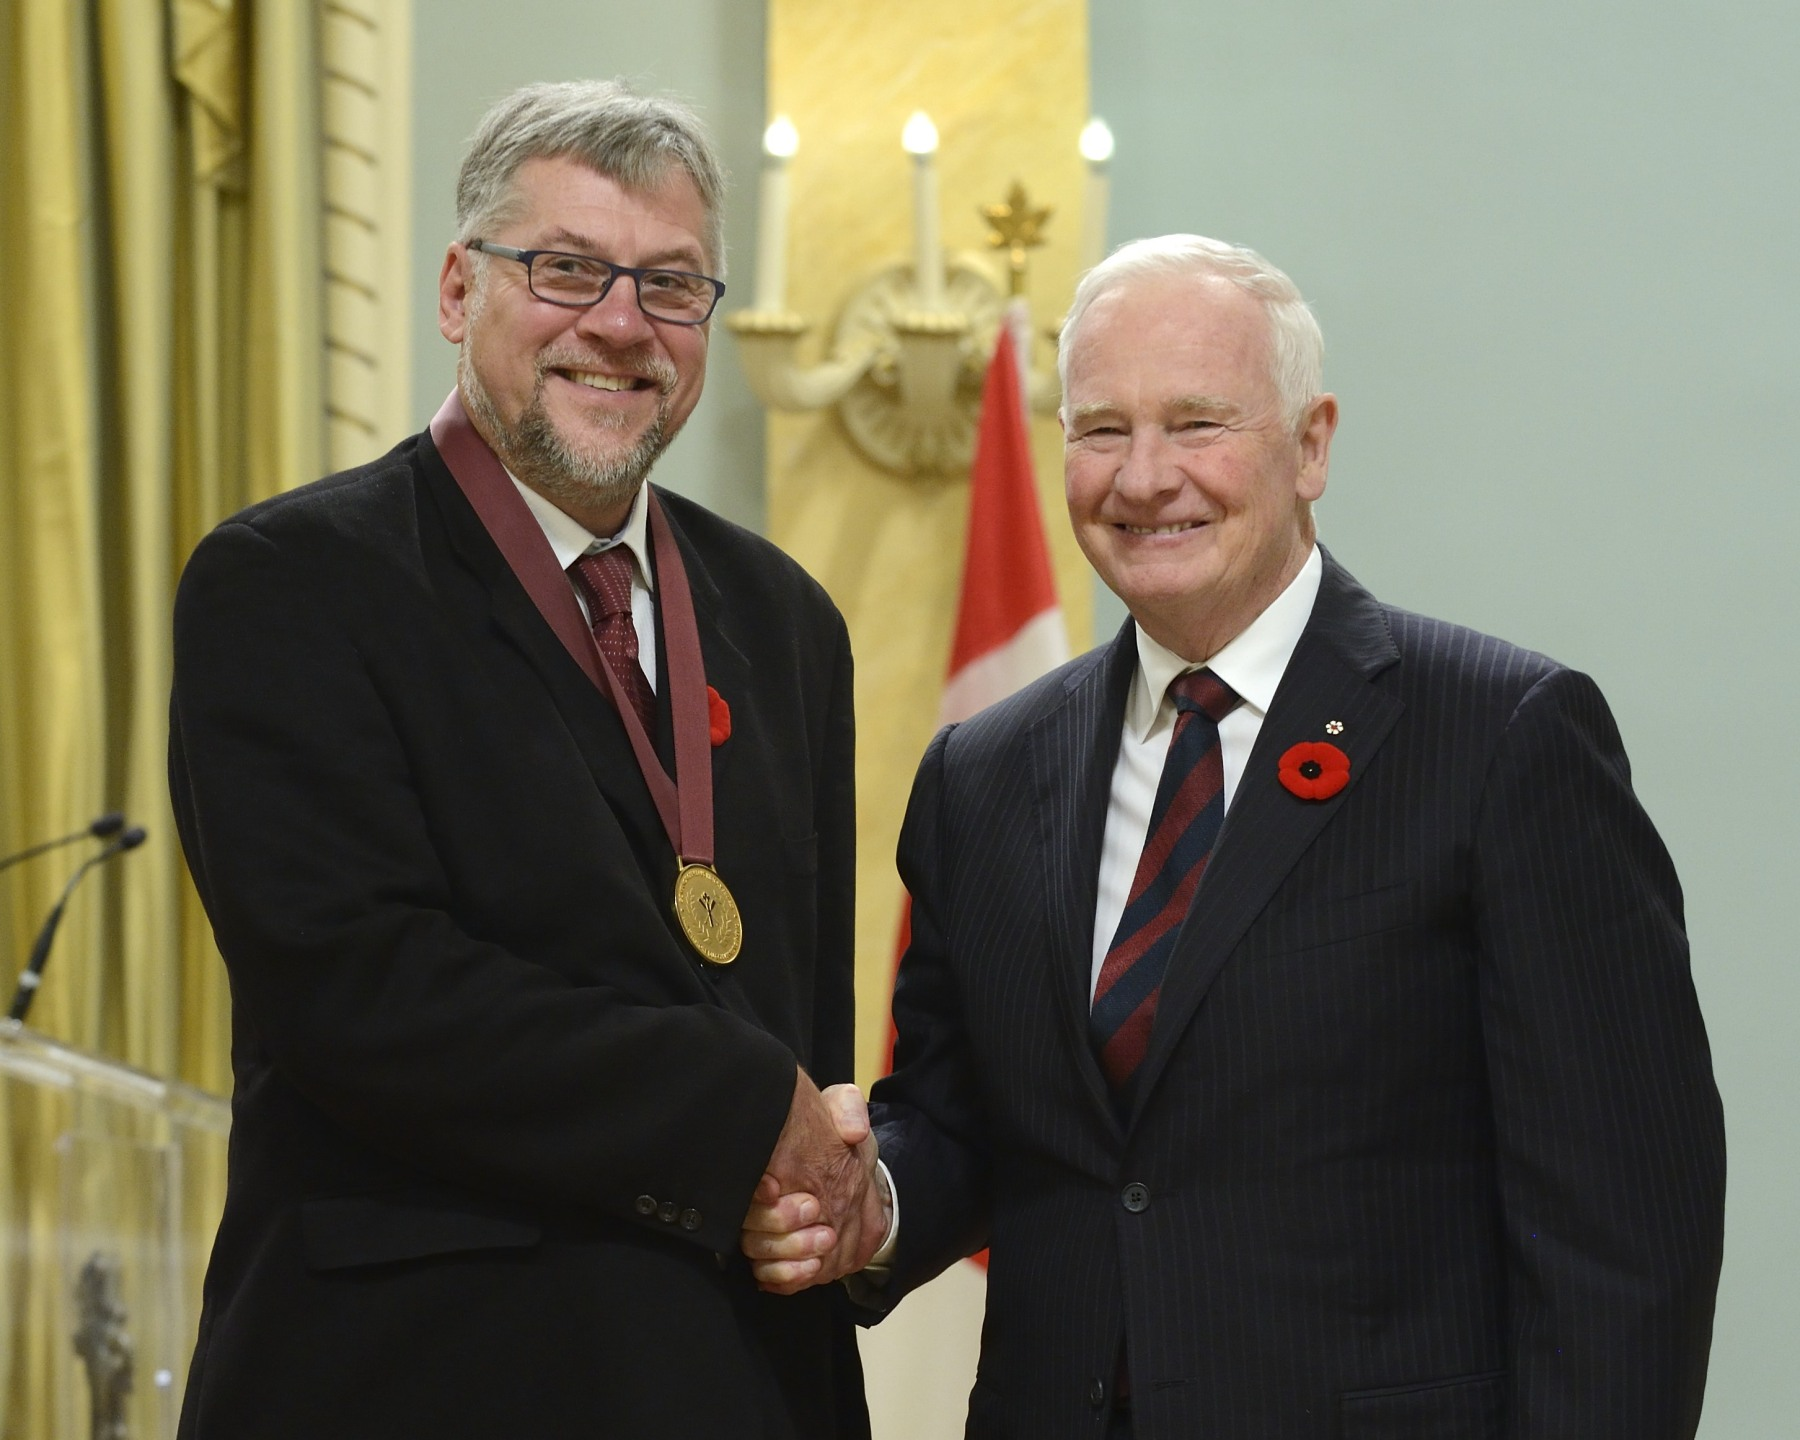 Mr. Mark Zuehlke, a prolific historical writer and pre-eminent military historian from Victoria, British Columbia, received the Governor General's History Award for Popular Media (Pierre Berton Award).